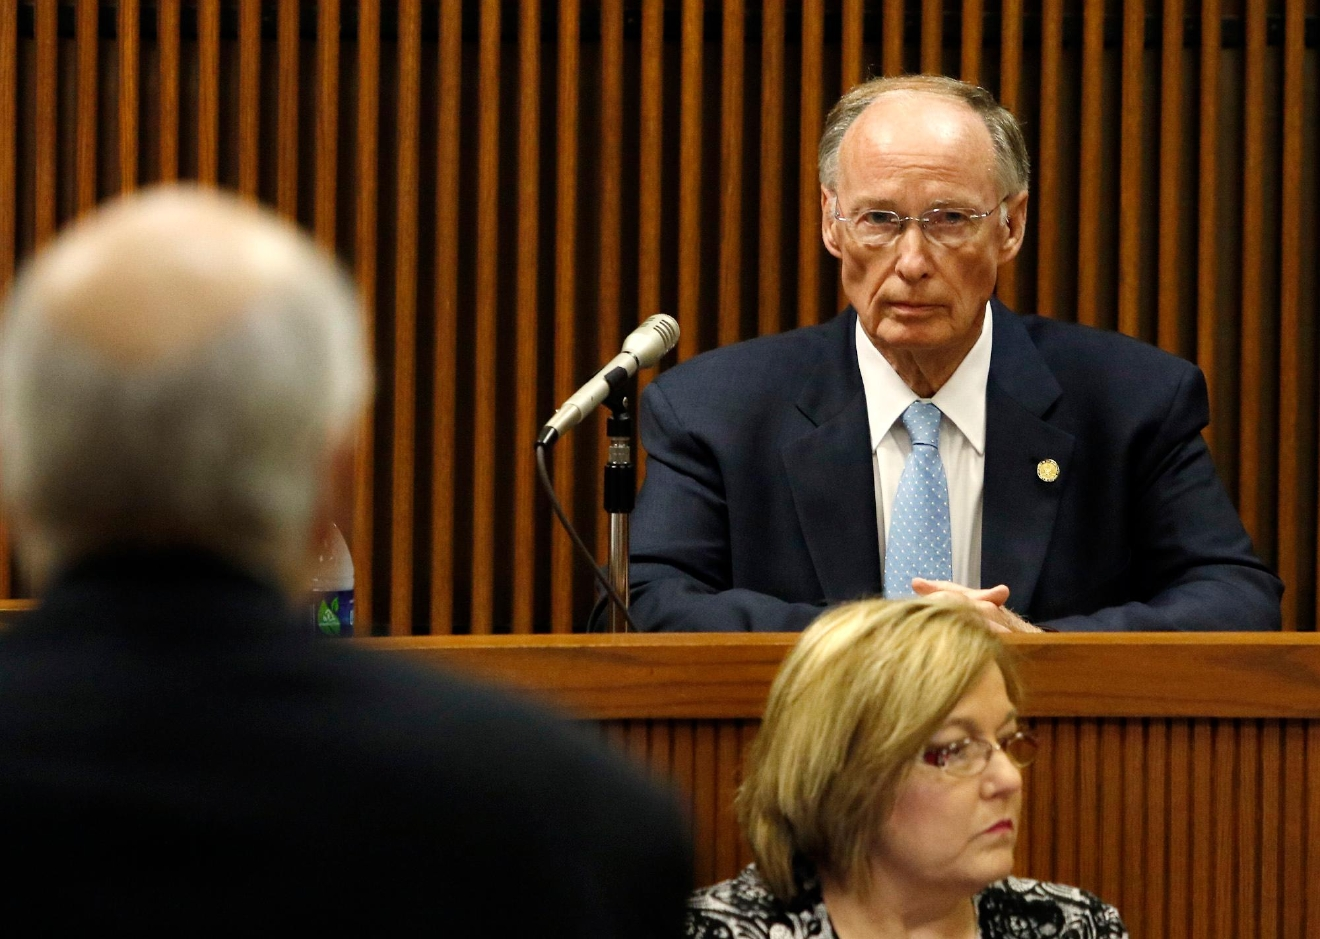 Prosecutor John Gibbs questions Alabama Governor Robert Bentley in the Speaker Mike Hubbard trial on Wednesday, June 1, 2016  in Opelika, Ala.(Todd J. Van Emst/Opelika-Auburn News/Pool)